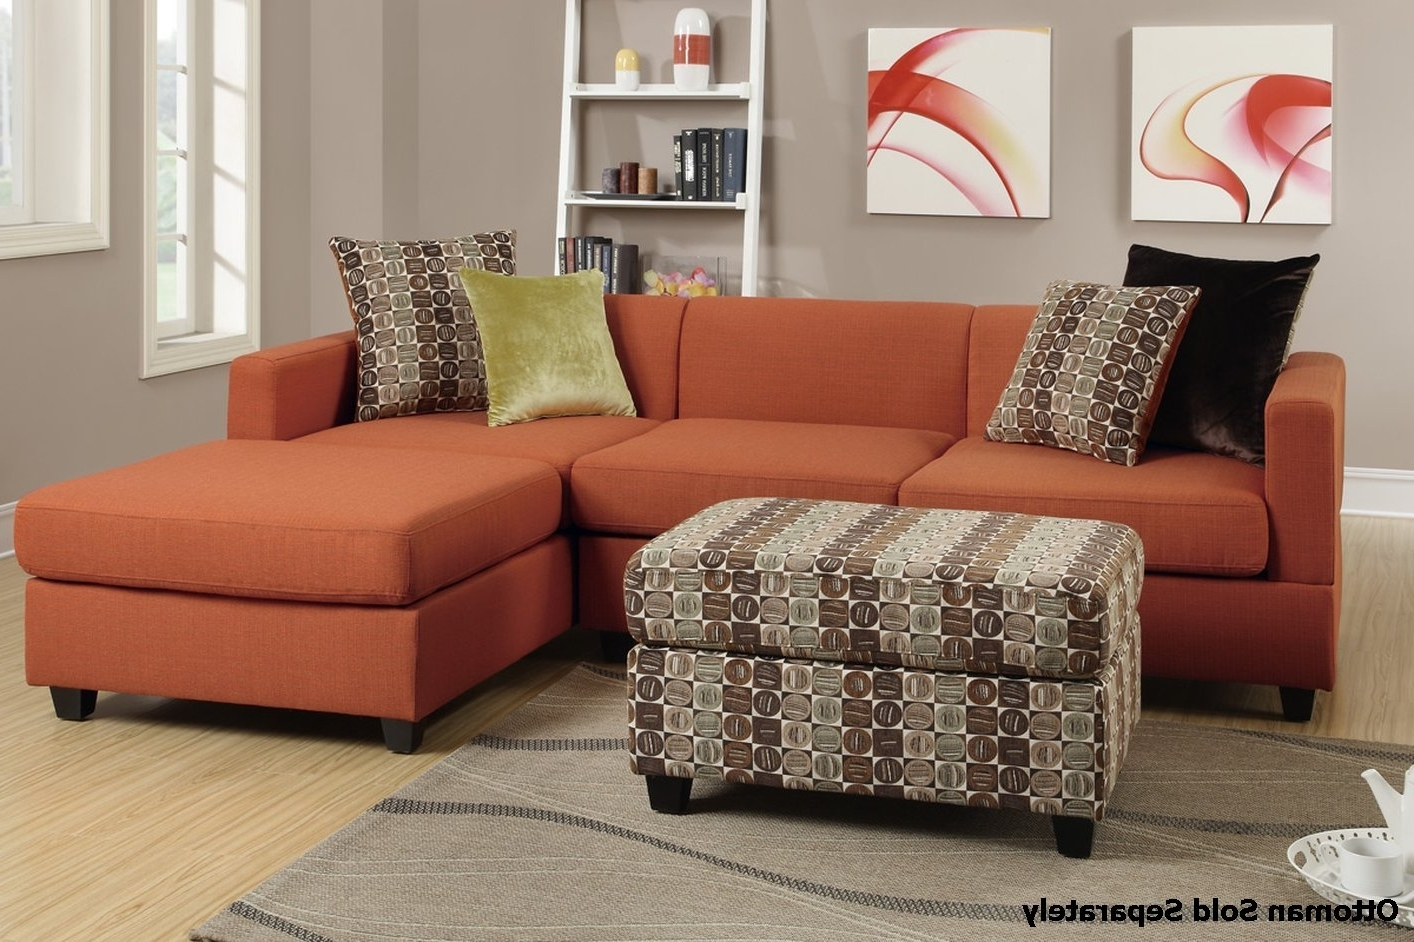 Most Recent Fabric Sectional Sofas Within Sectional Sofa Design: Fabric Sectional Sofa Best Ever Leather (View 11 of 15)